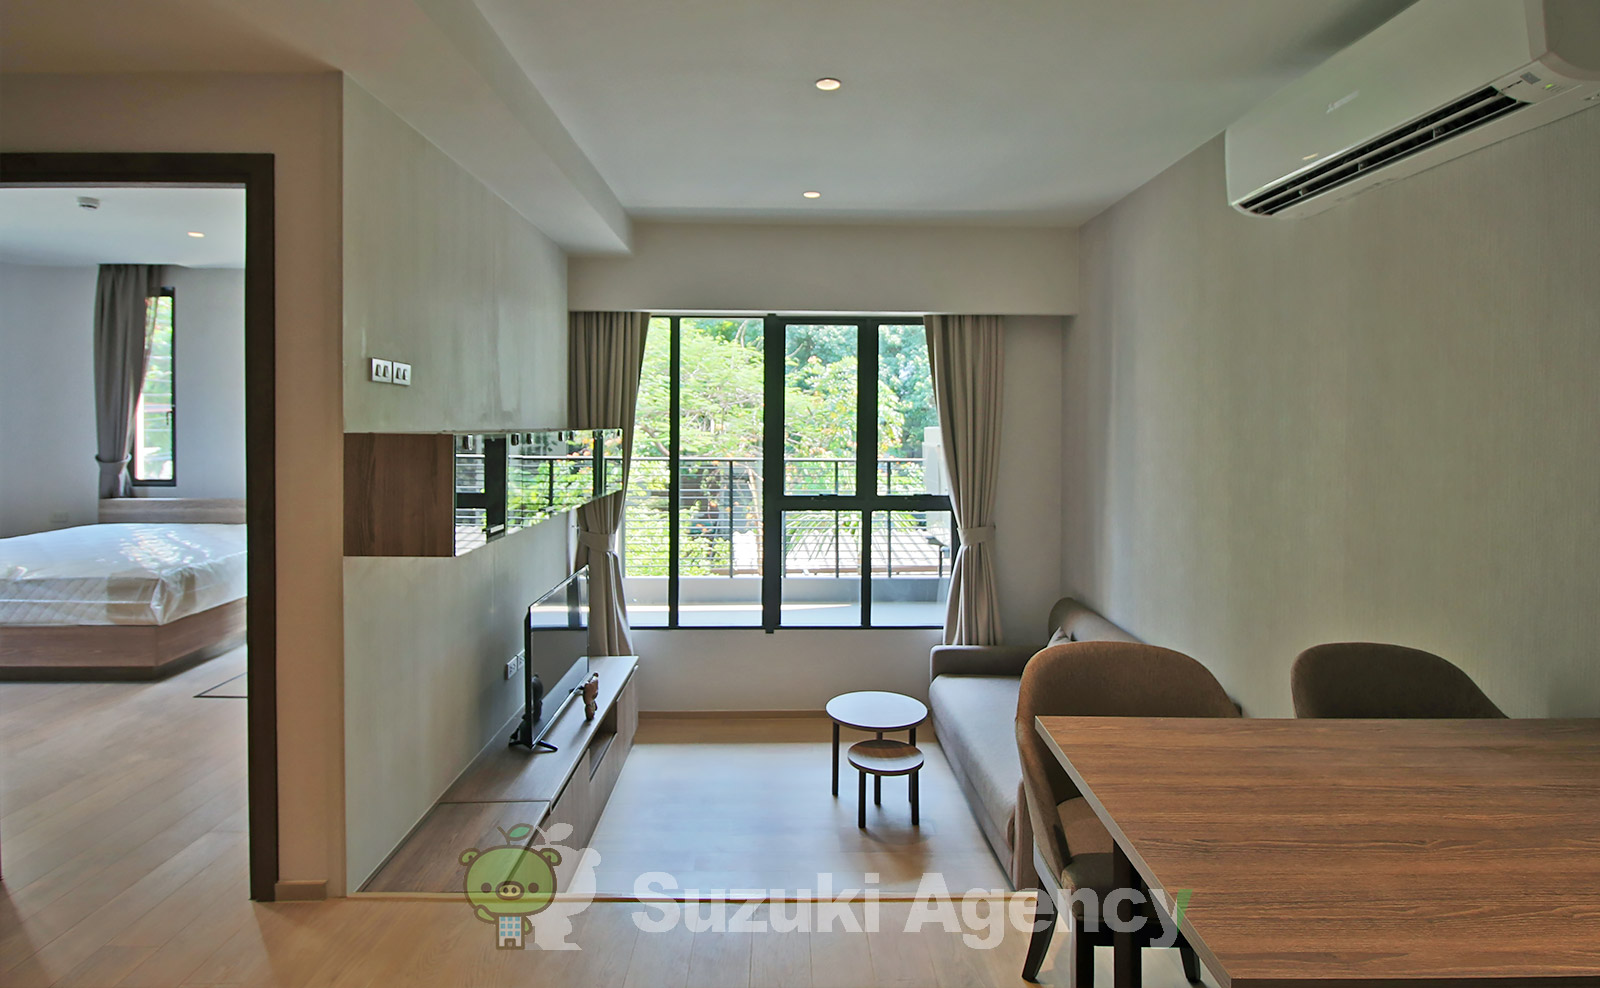 Runesu Thonglor 5:2Bed Room Photos No.1